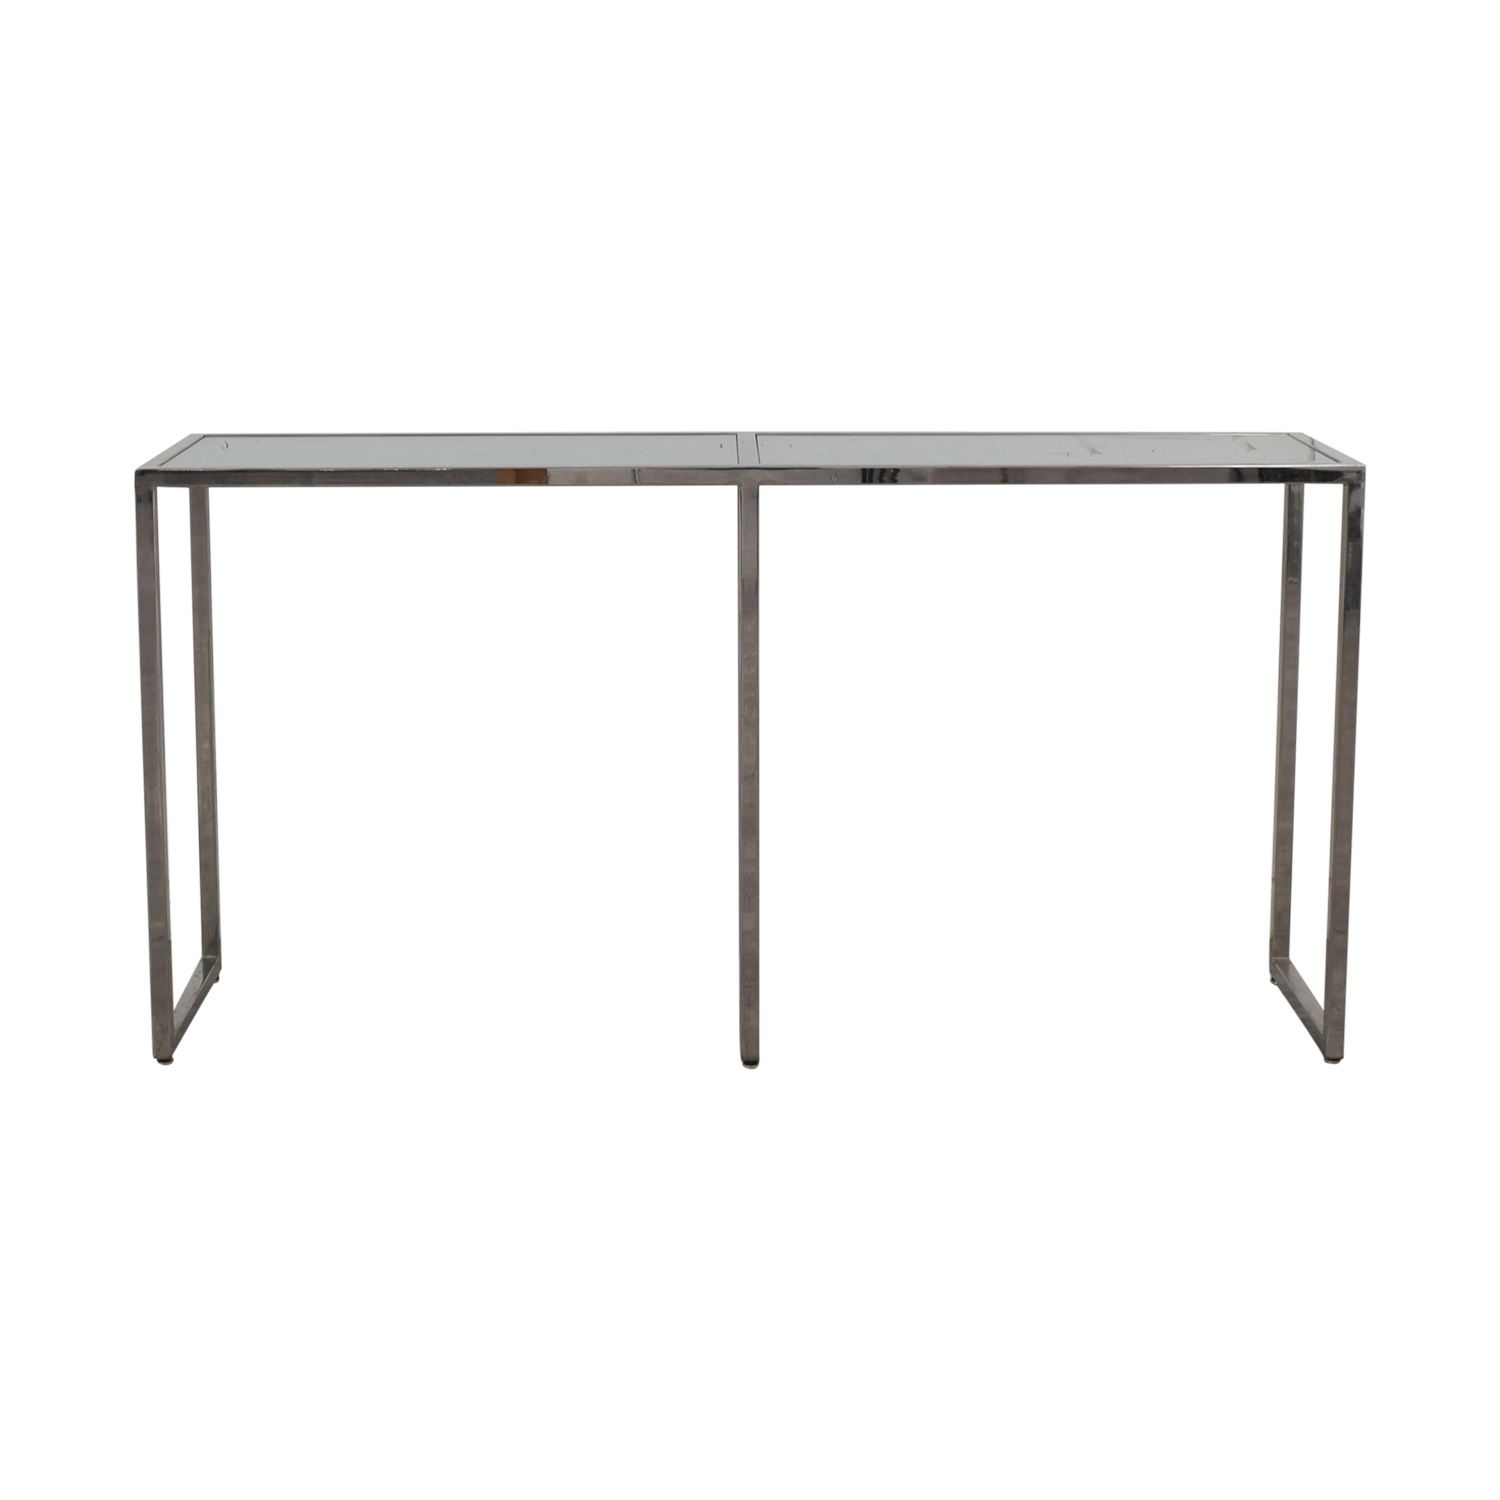 TR Designs TR Designs Tinted Glass and Chrome Console Table for sale